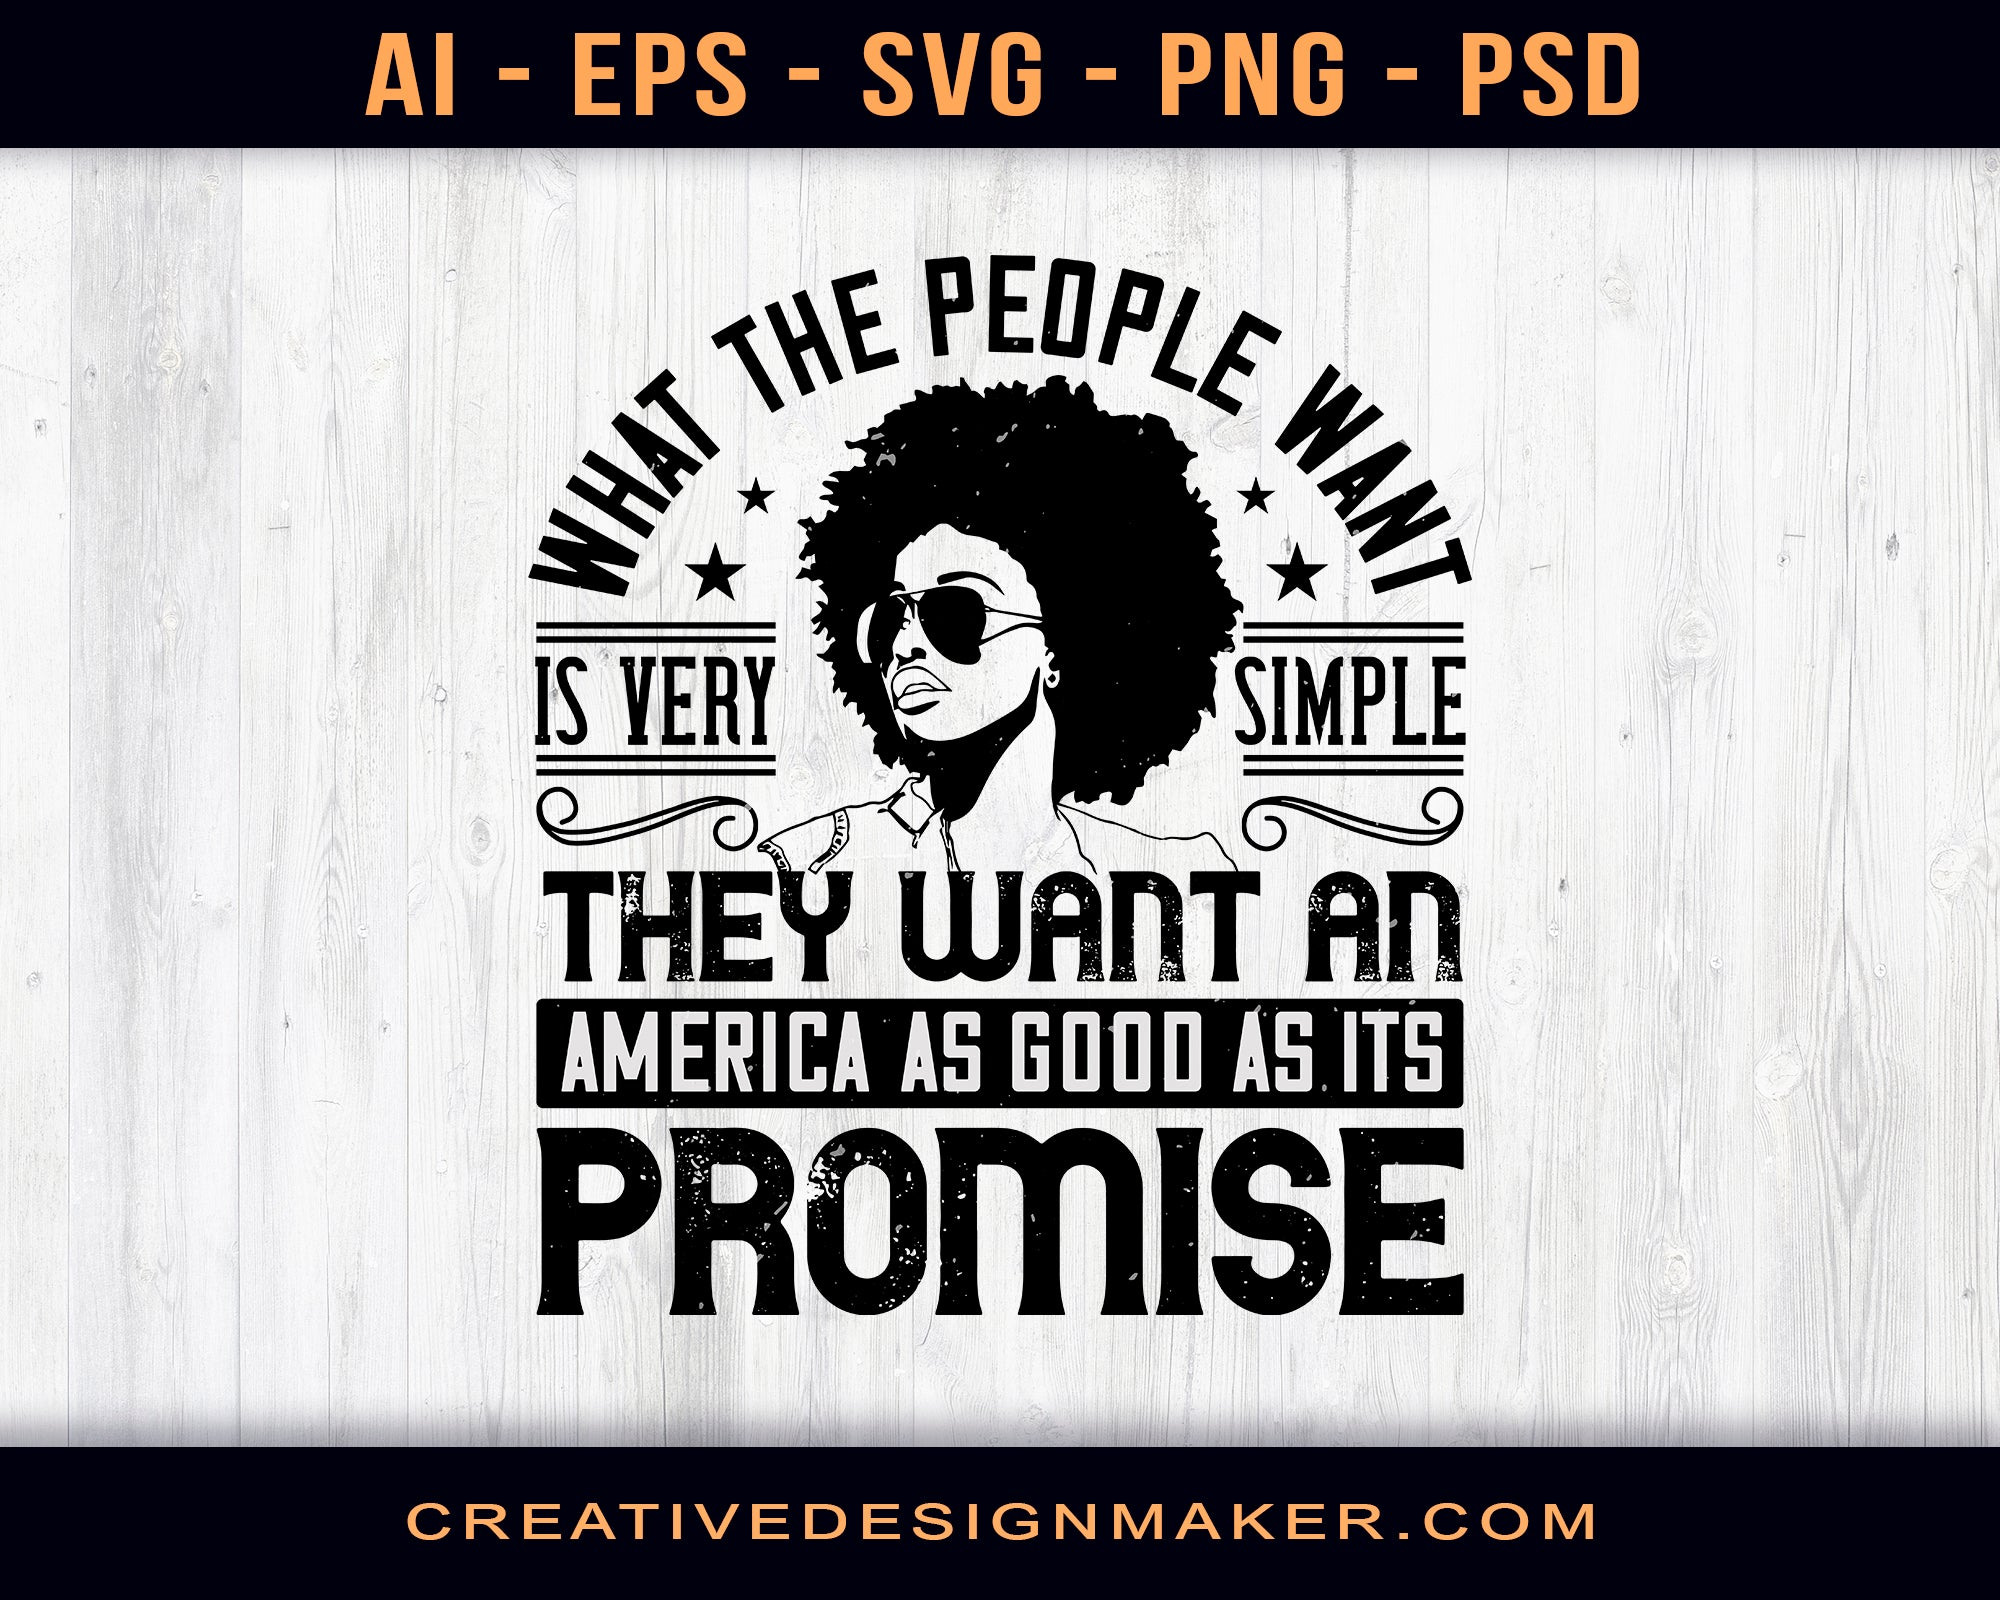 What The People Want Is Very Simple - They Want An America As Good As Its Promise Afro Print Ready Editable T-Shirt SVG Design!